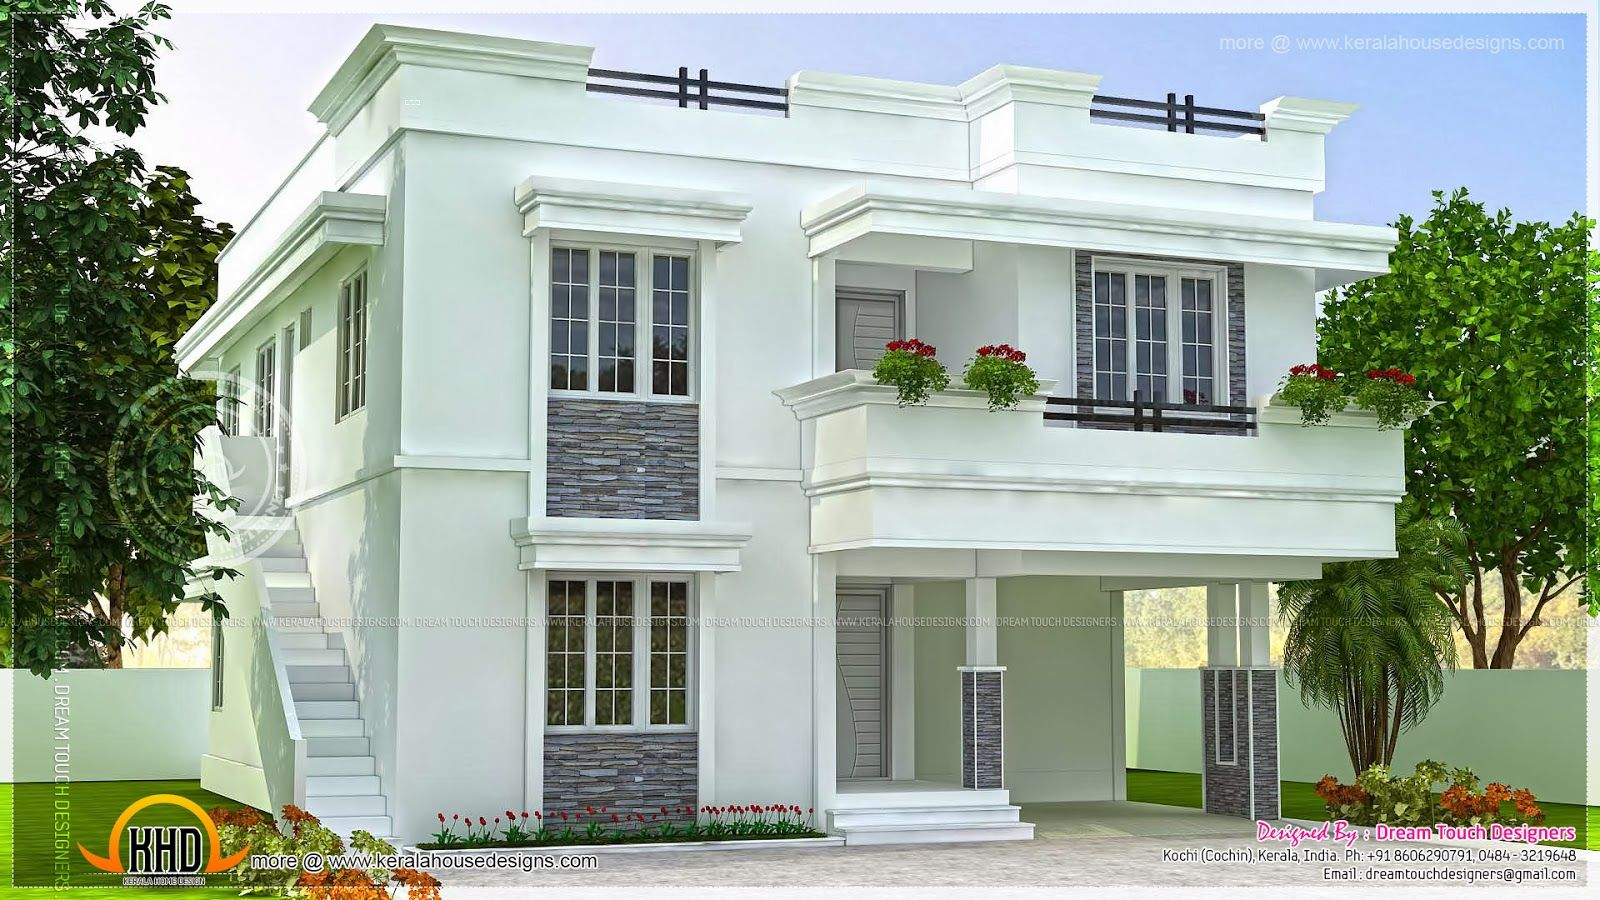 Modern beautiful home modern beautiful home design indian for Home outer design images